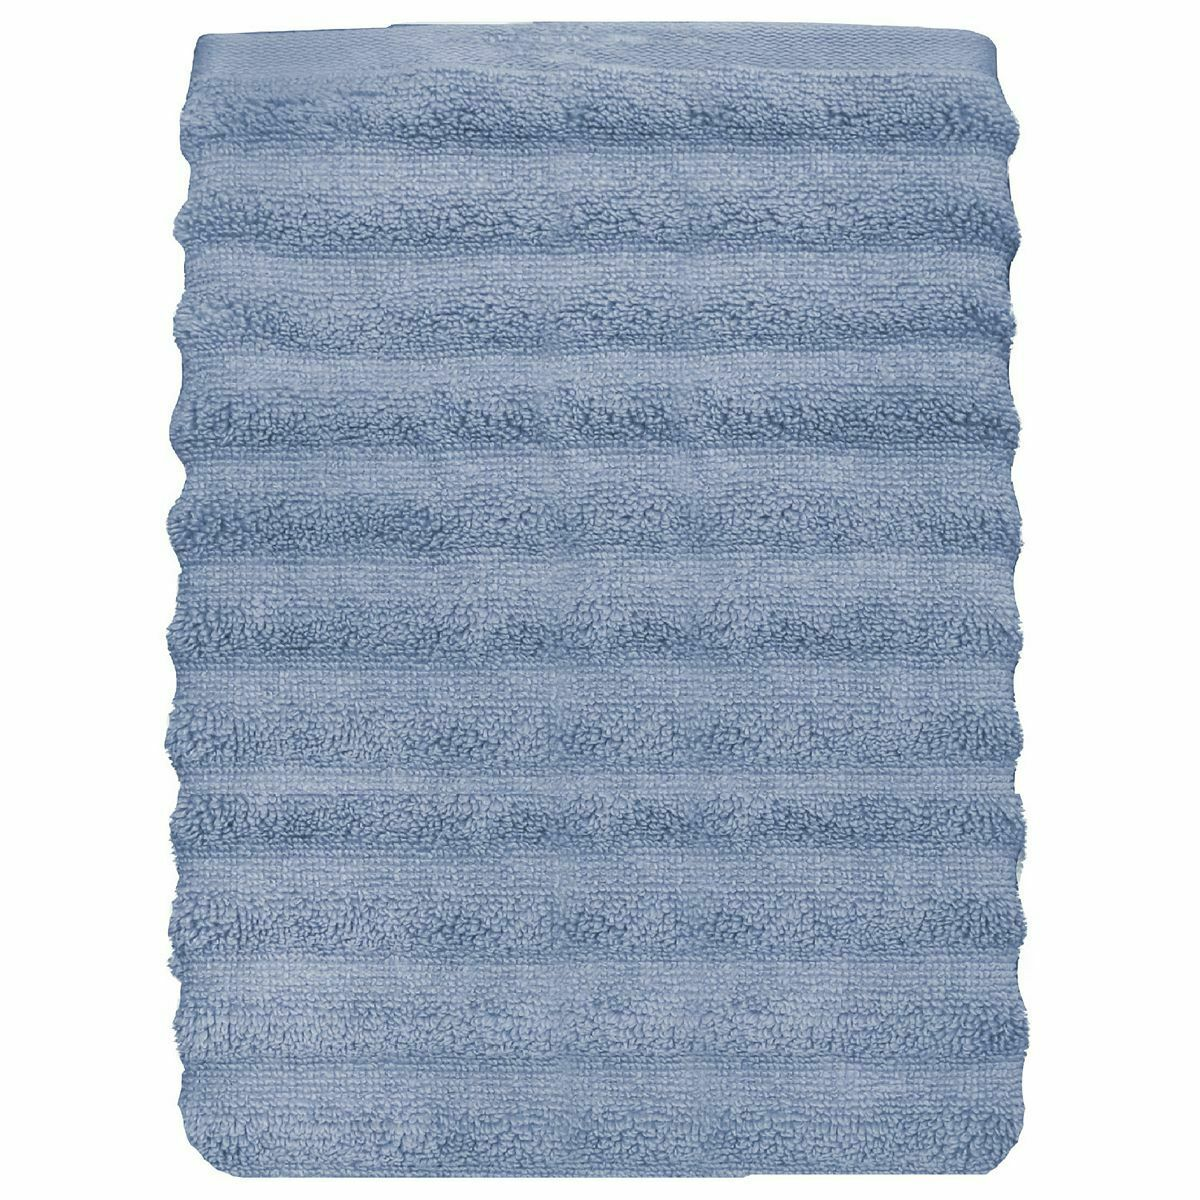 Sonoma Goods for Life Quick Drying Bath Towel 30